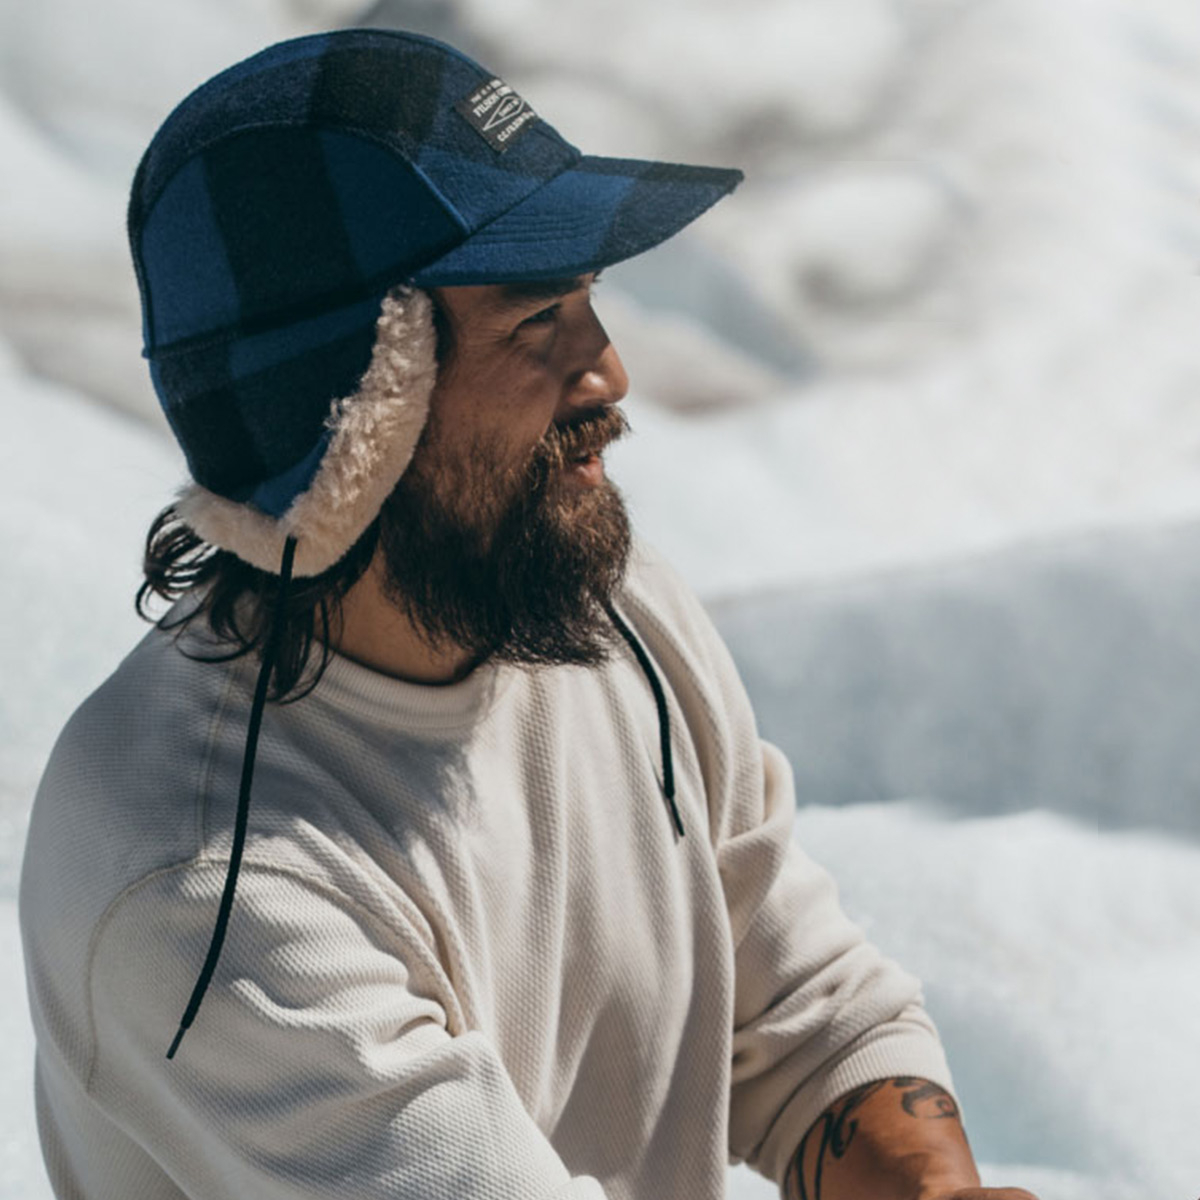 Filson Double Mackinaw Cap Cobalt Black, unbeatable cold-weather protection in the coldest weather